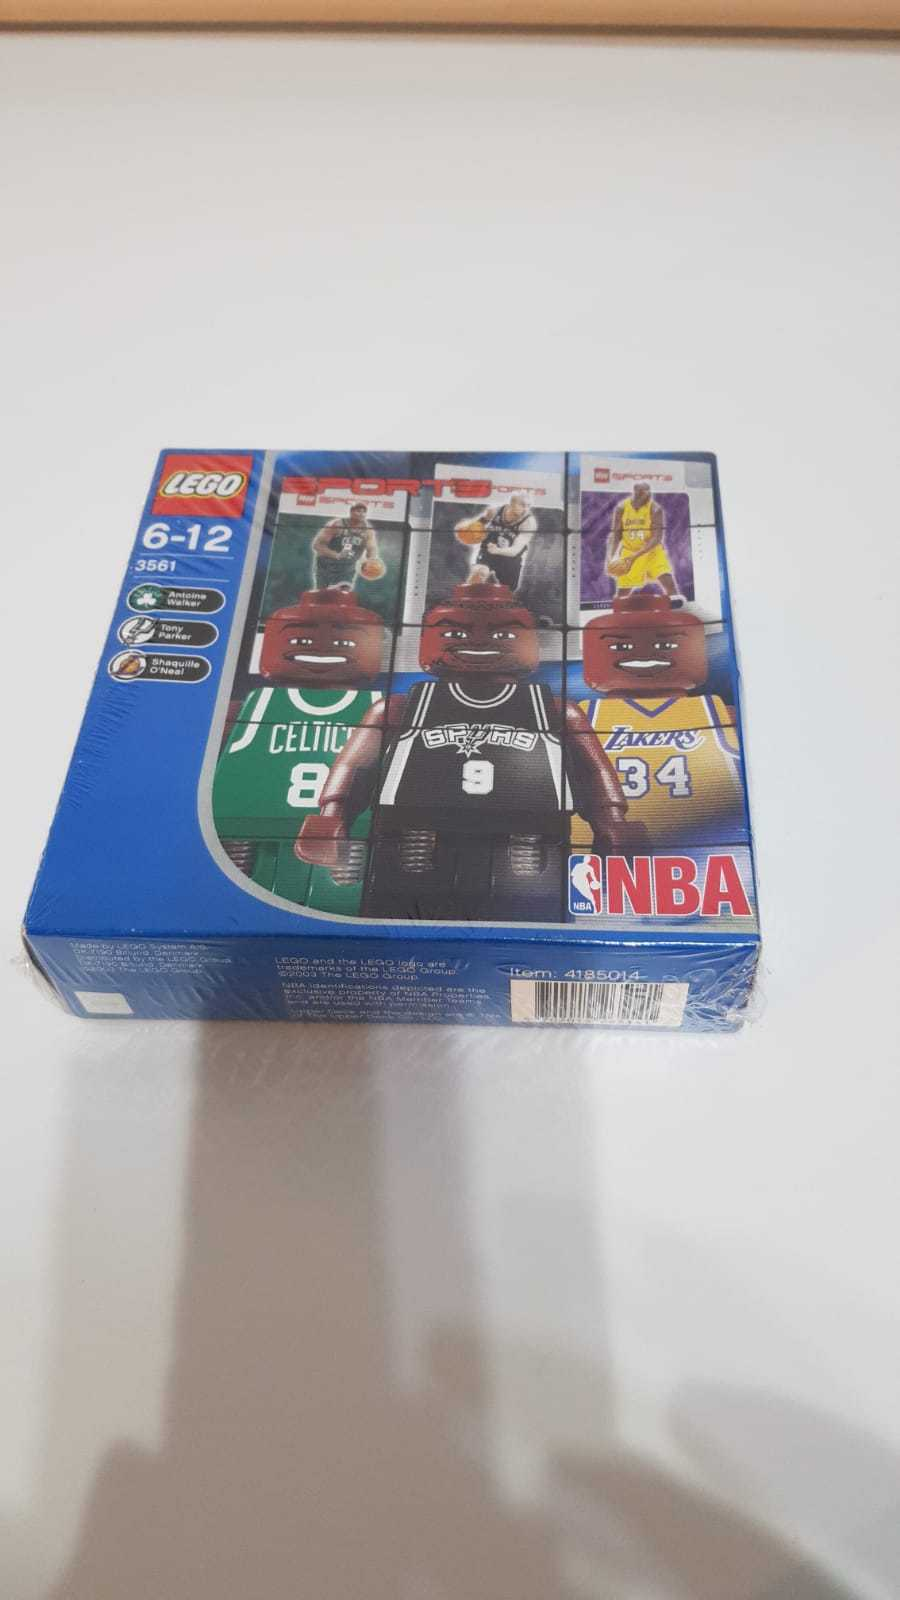 LEGO 3561 NBA PLAYER SHAQUILLE O' NEAL TONY PARKER WALKER RETIrot